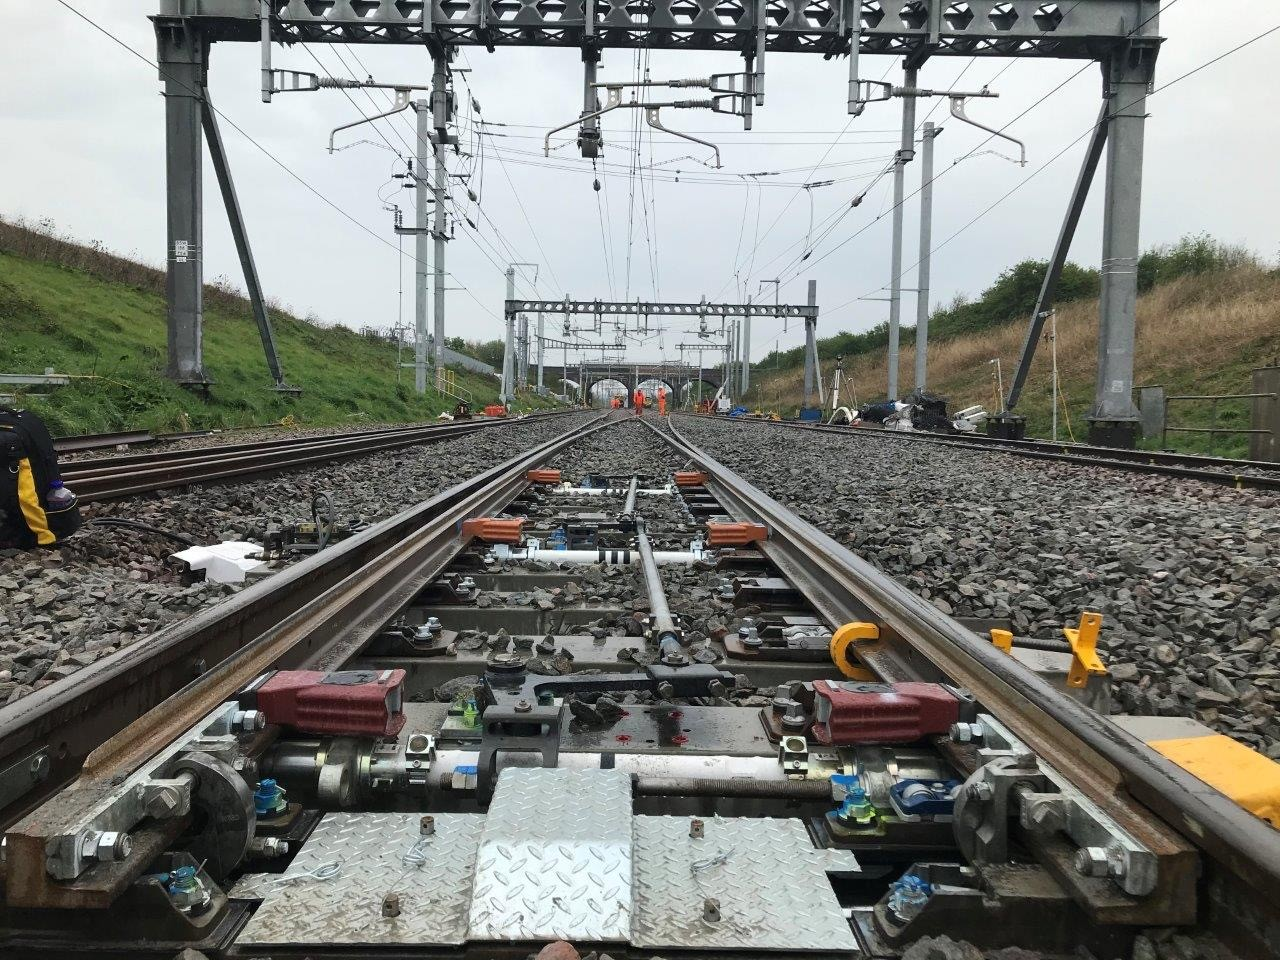 Railway upgrade work near Bristol